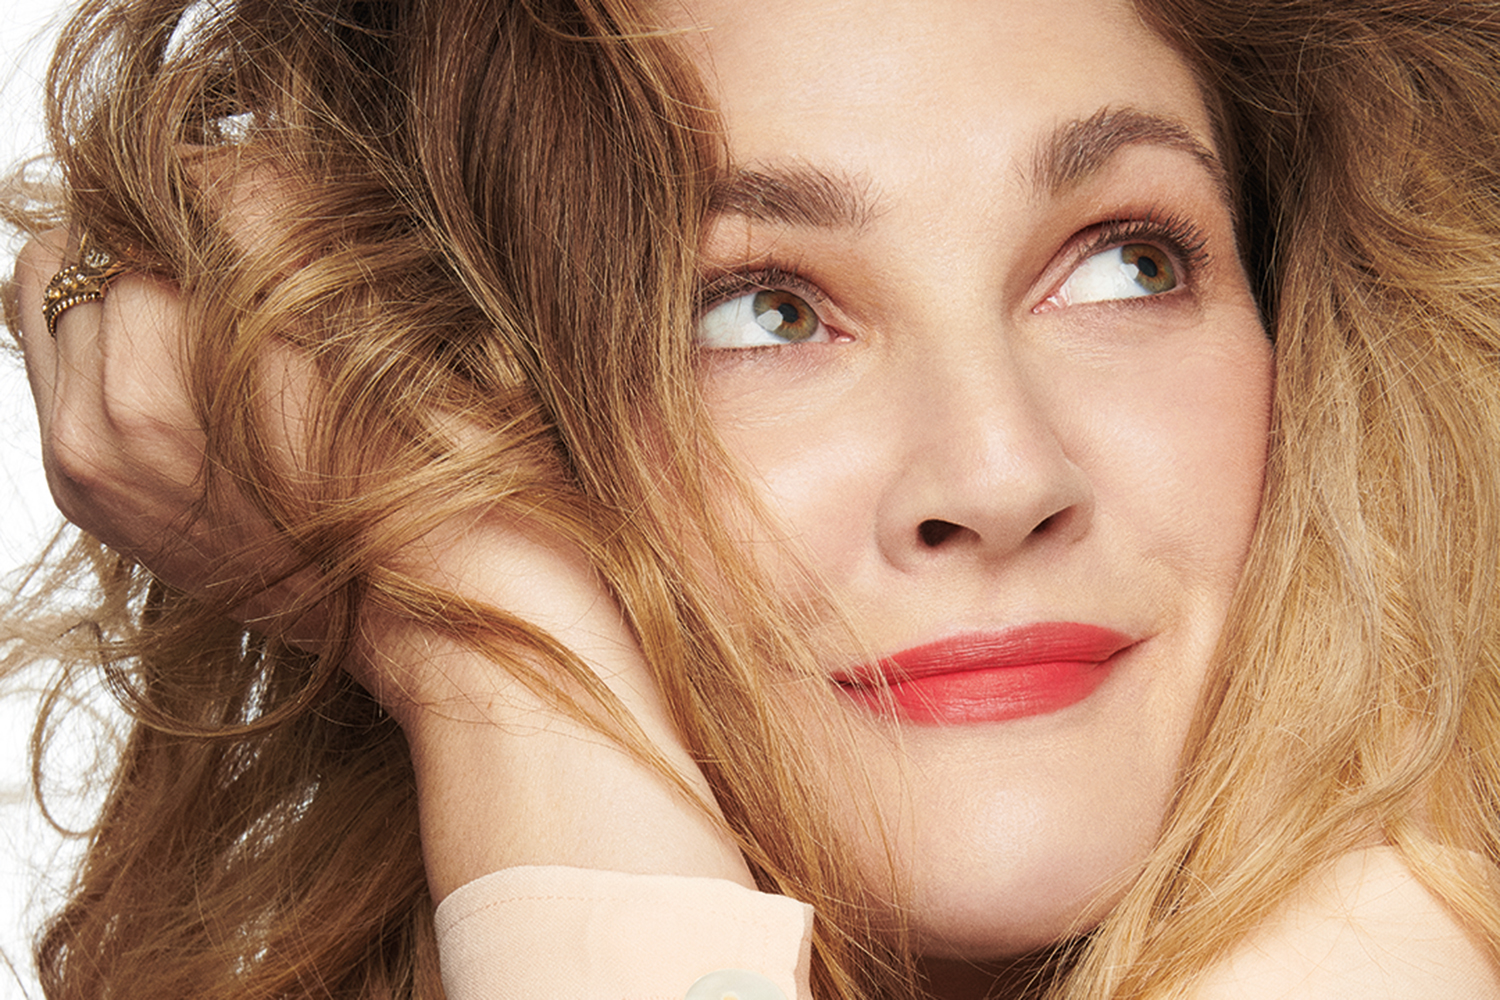 Drew barrymore nude pics videos that you must see